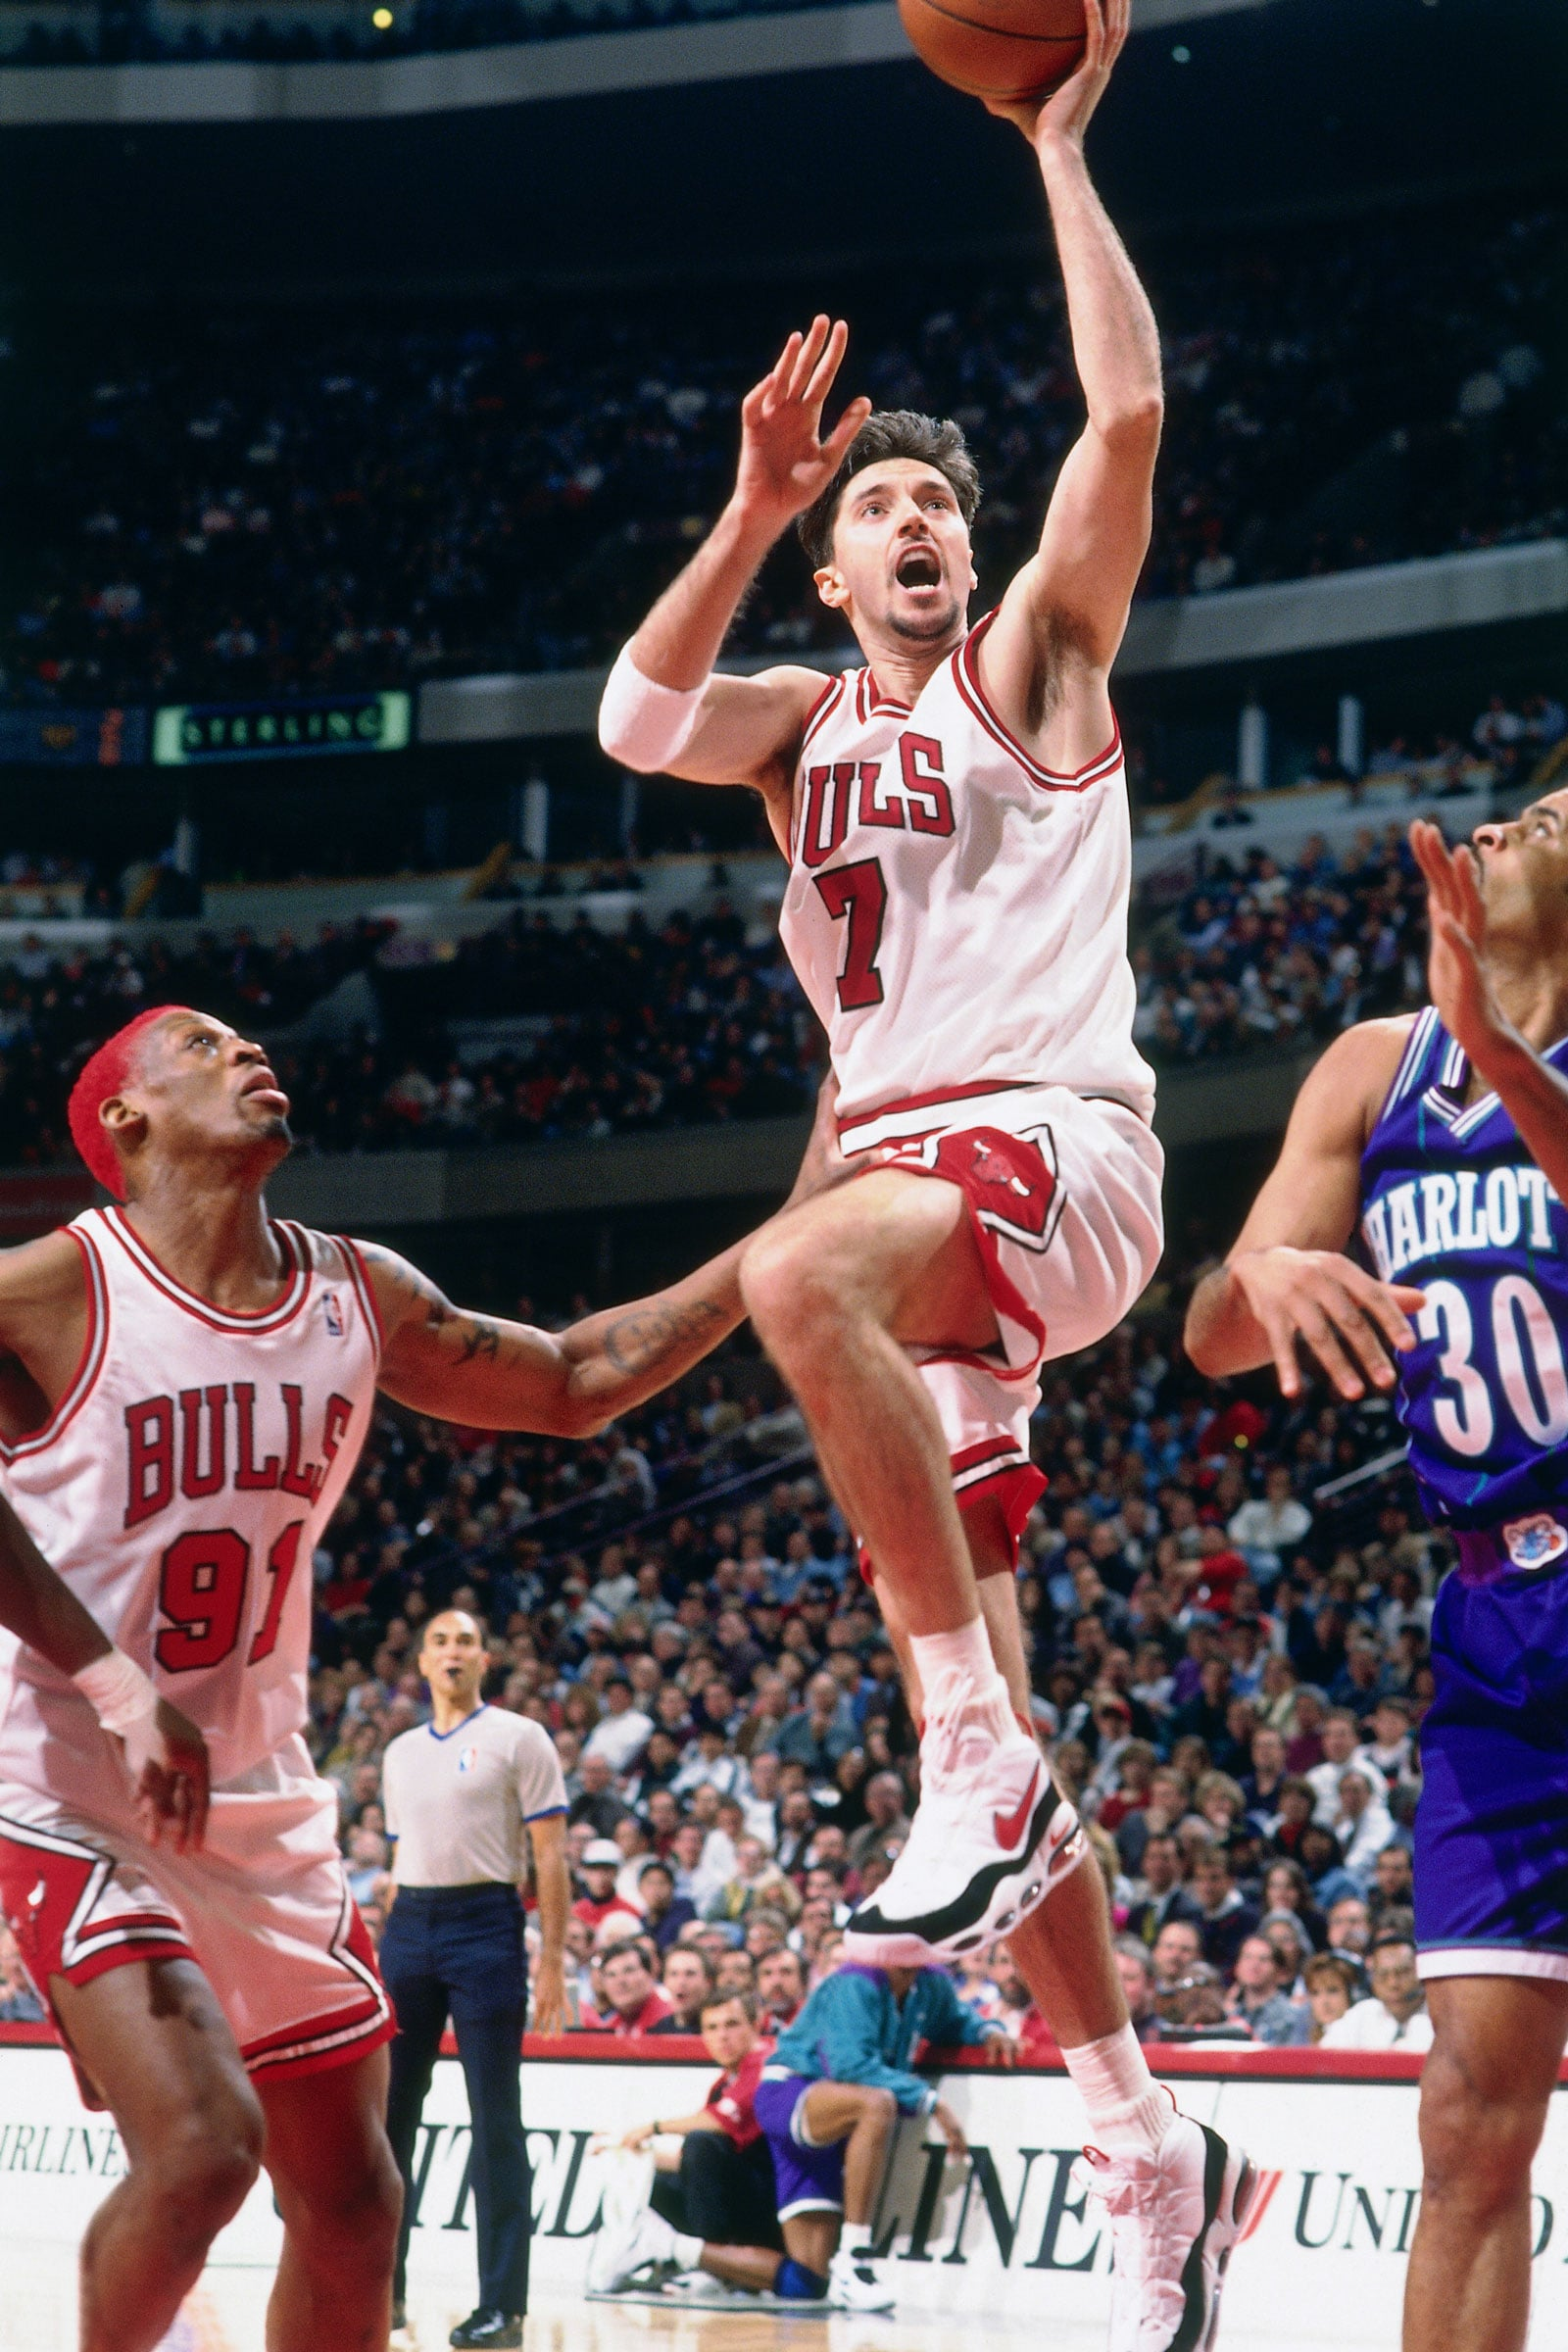 Toni Kukoc #7 of the Chicago Bulls shoots the ball against the Charlotte Hornets on April 8, 1996 at the United Center in Chicago, Illiniois